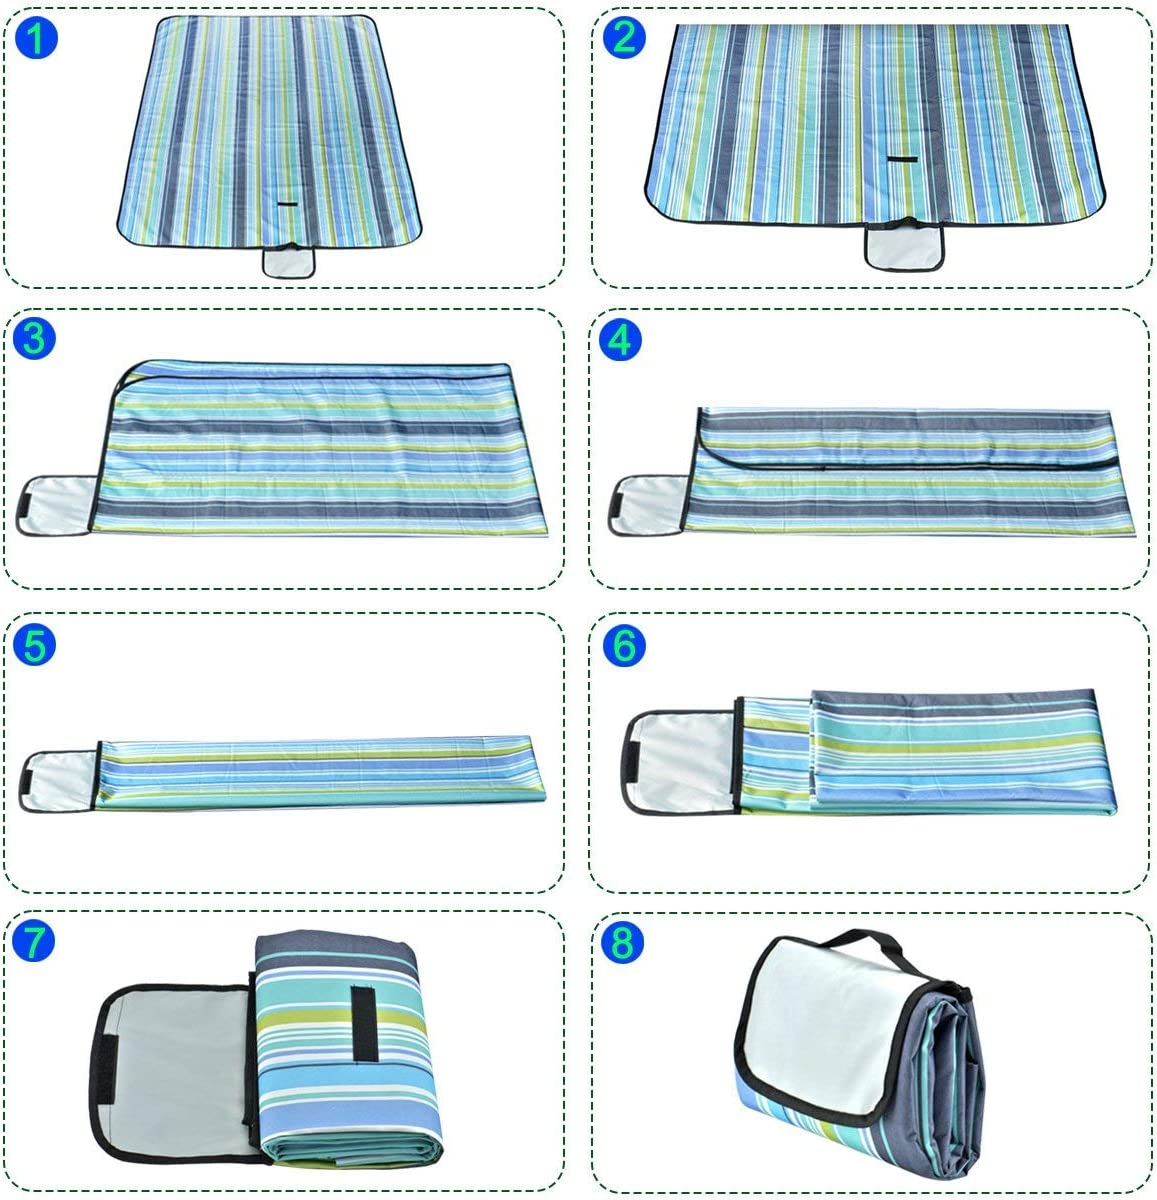 Beaches NB Magic Picnic Mat 59x79 Picnic Blanket Striped Handy Beach Mat Sandproof and Waterproof for Picnic RVing and Outings